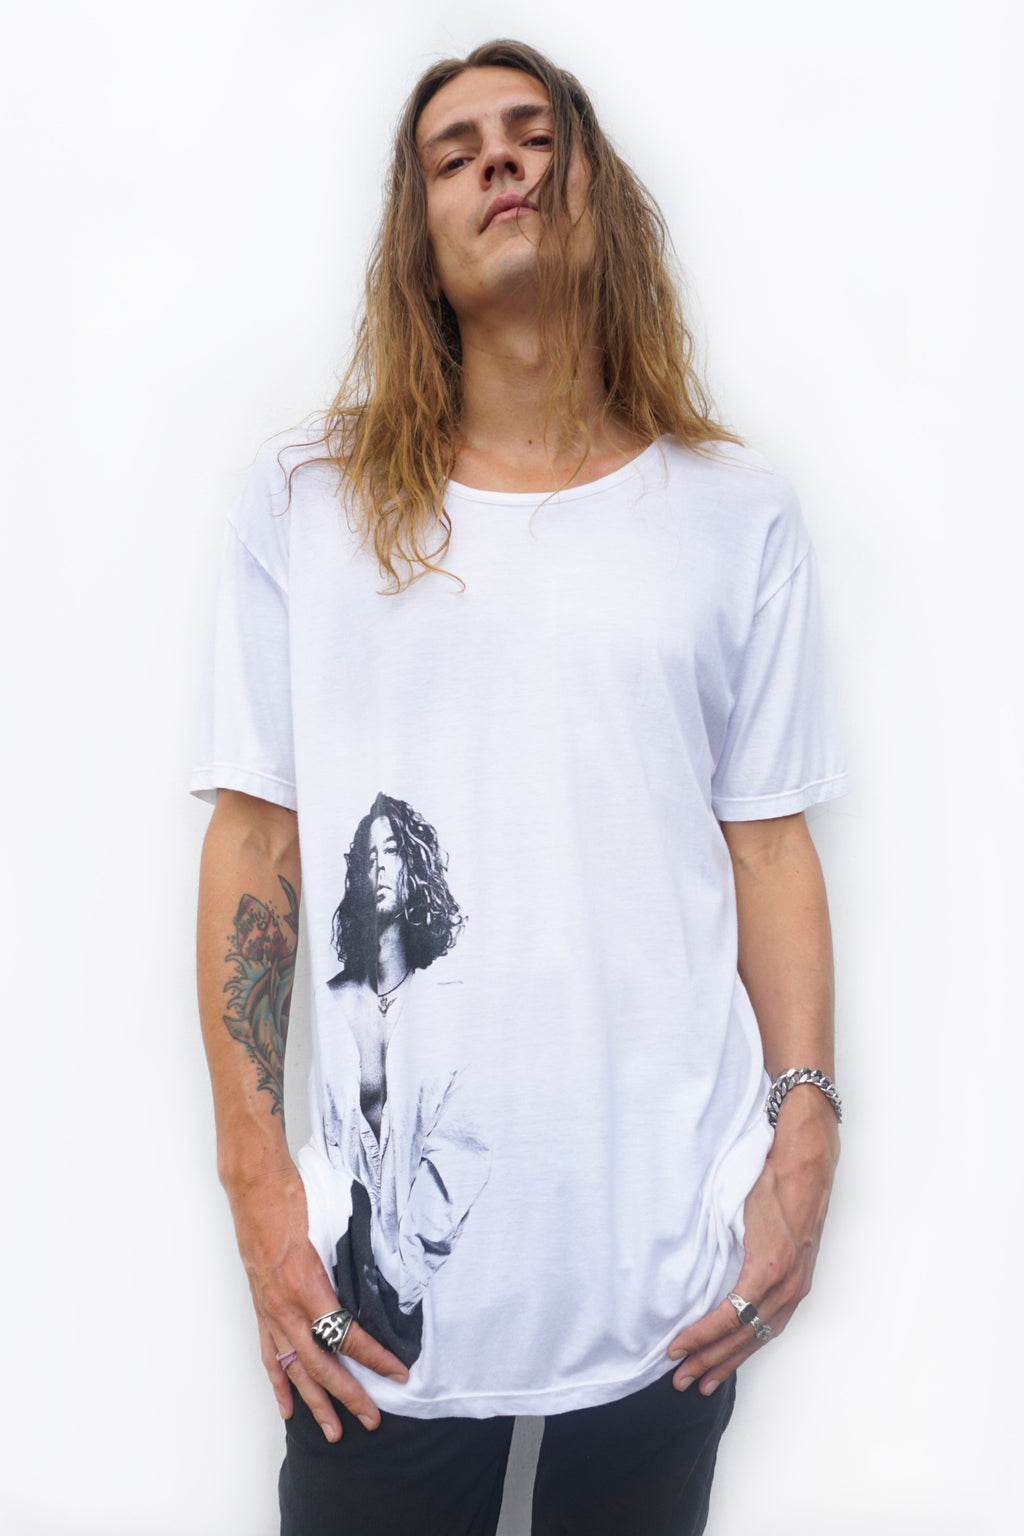 USE CODE 'LOVEHUTCH' TO SAVE 20% OFF - PRE-ORDER - 'HUTCH' LONG T-SHIRT - WHITE